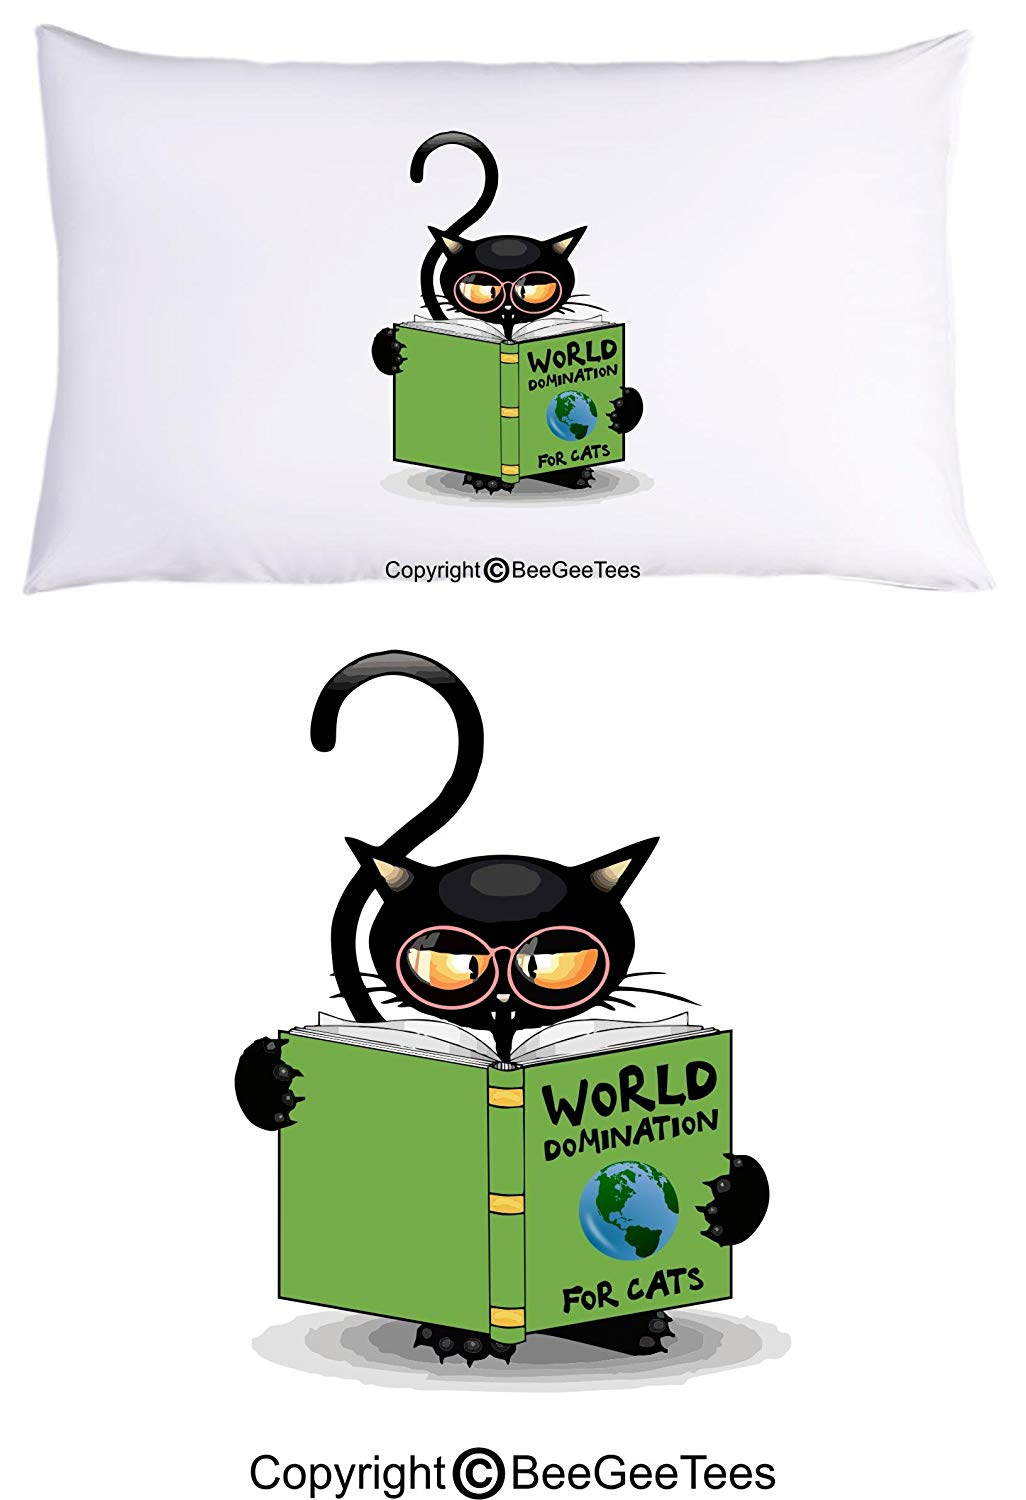 World Domination For Cats Funny Cat Lover Pillowcase by BeeGeeTees for Grandma's Kitty Rescue (1 Queen Pillowcase)